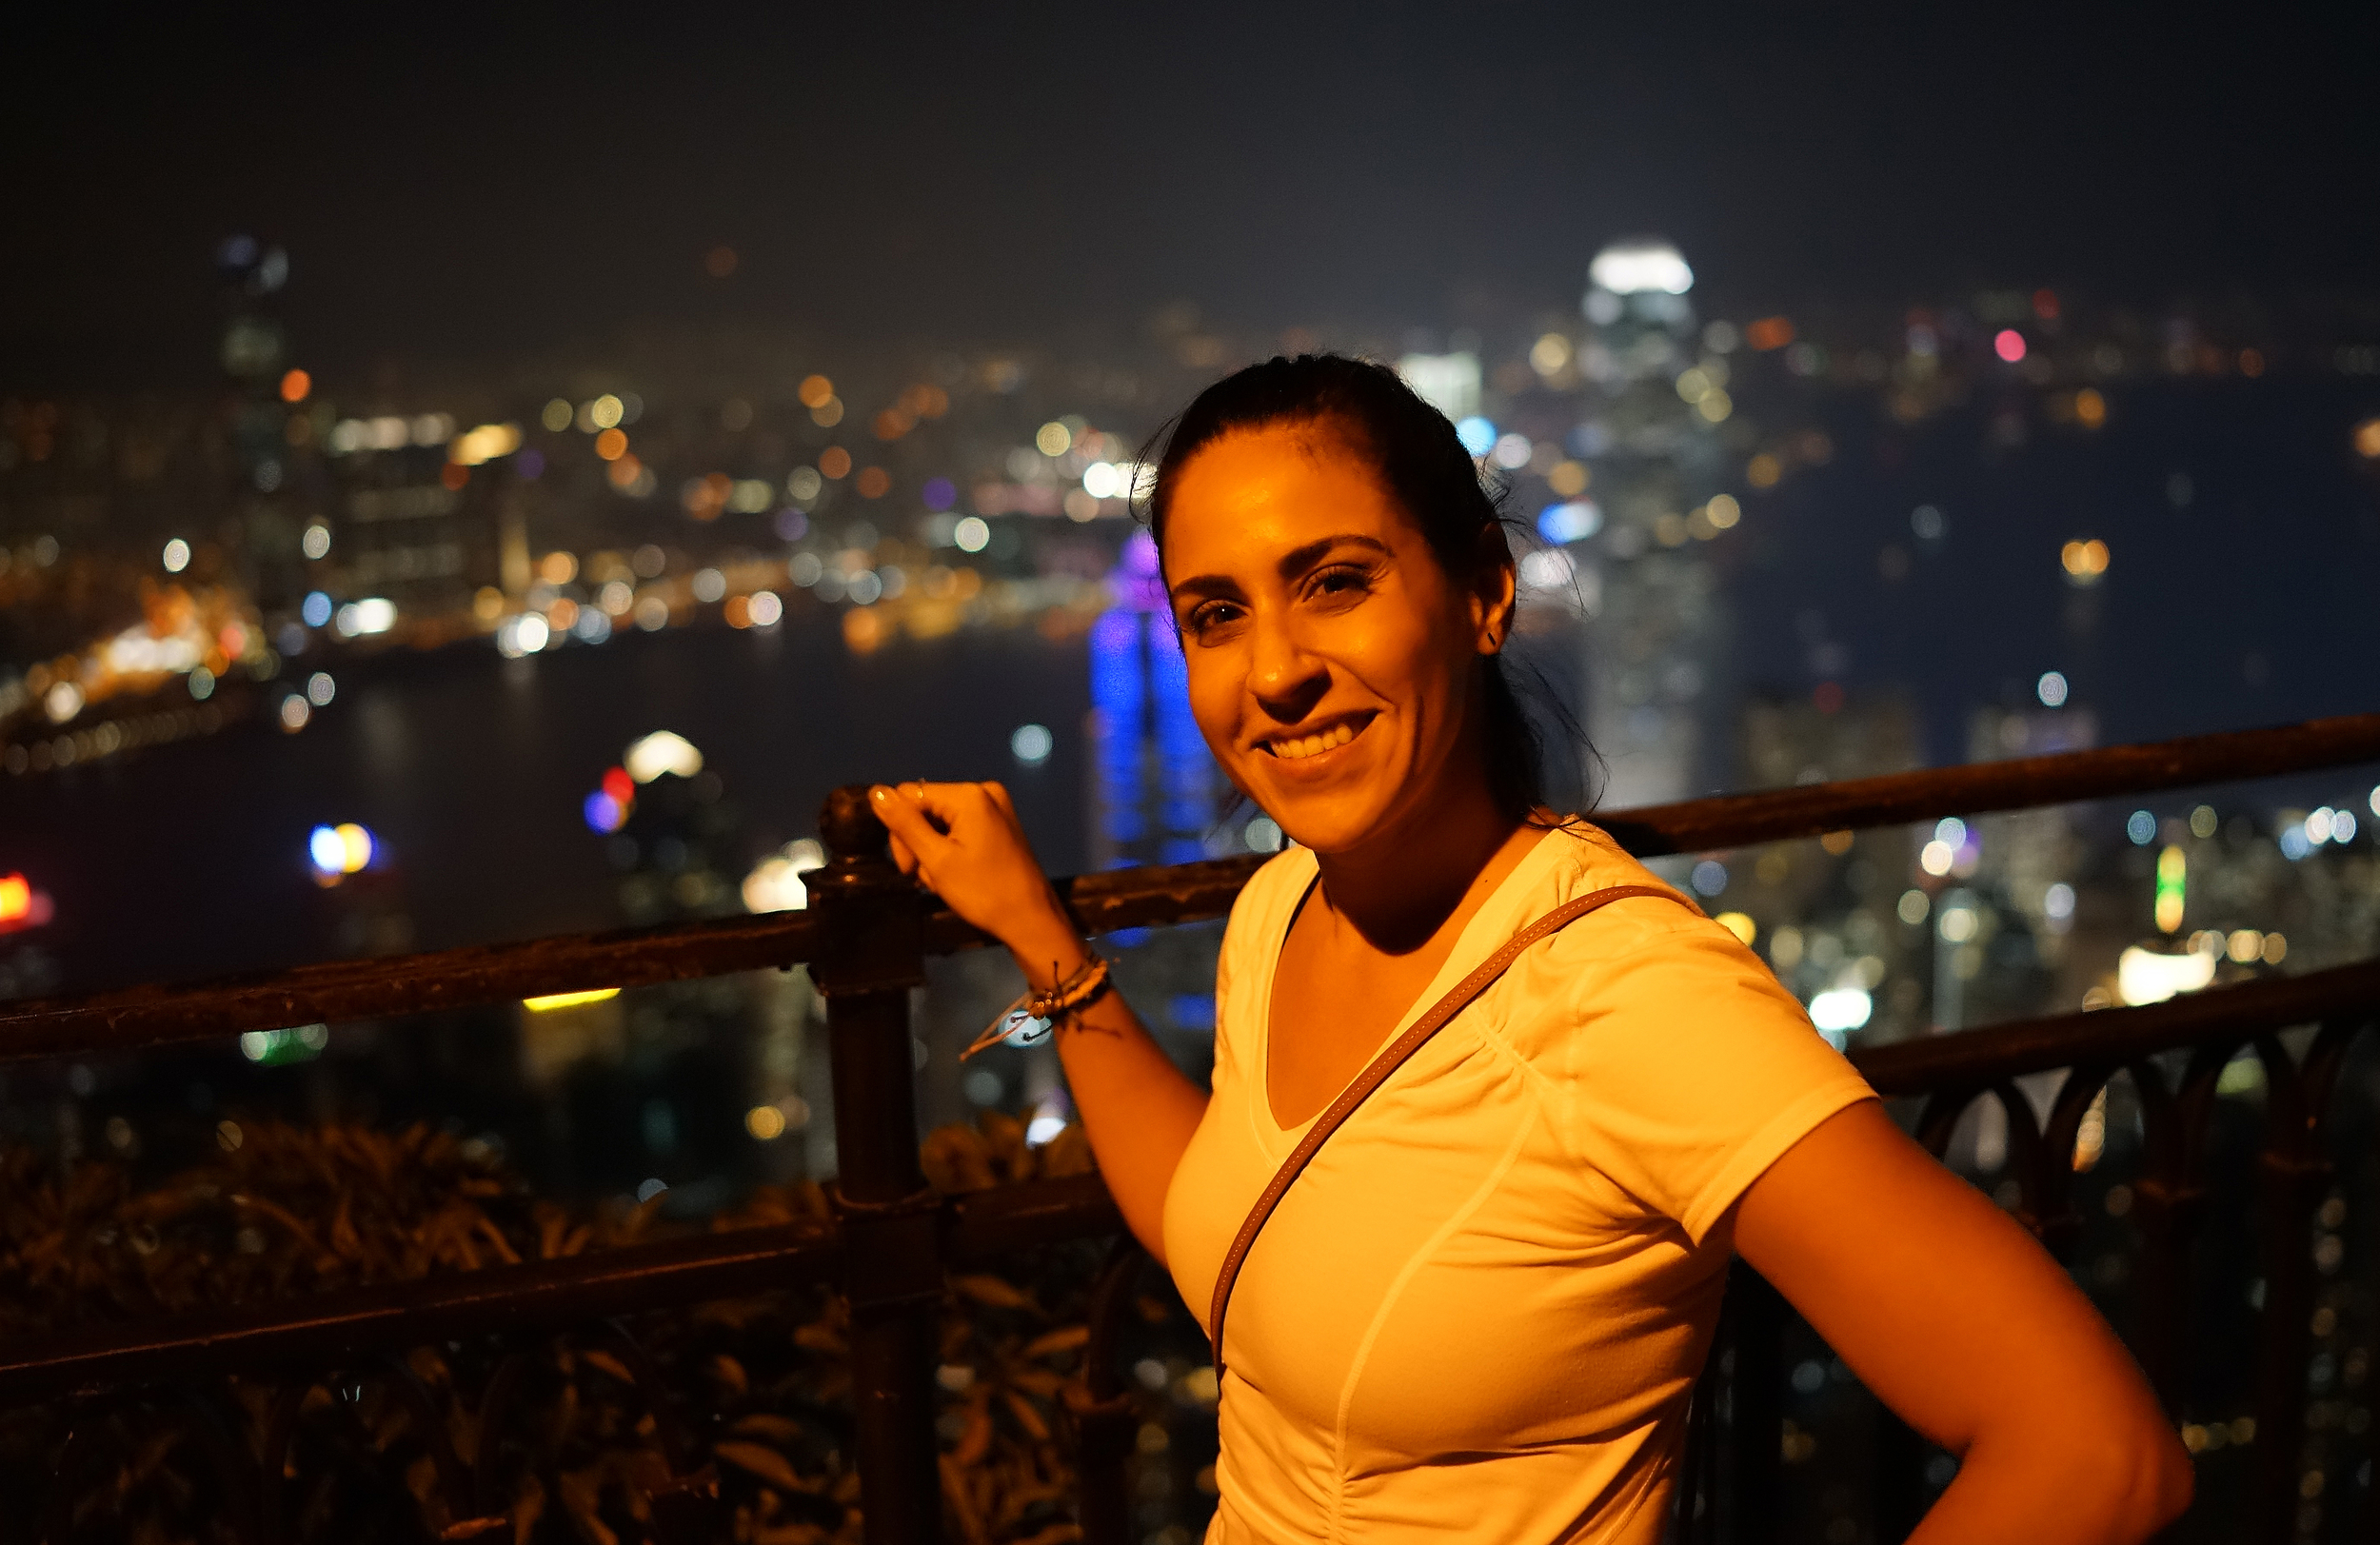 Vinessa enjoying the remarkable view of Hong Kong at night from the Peak